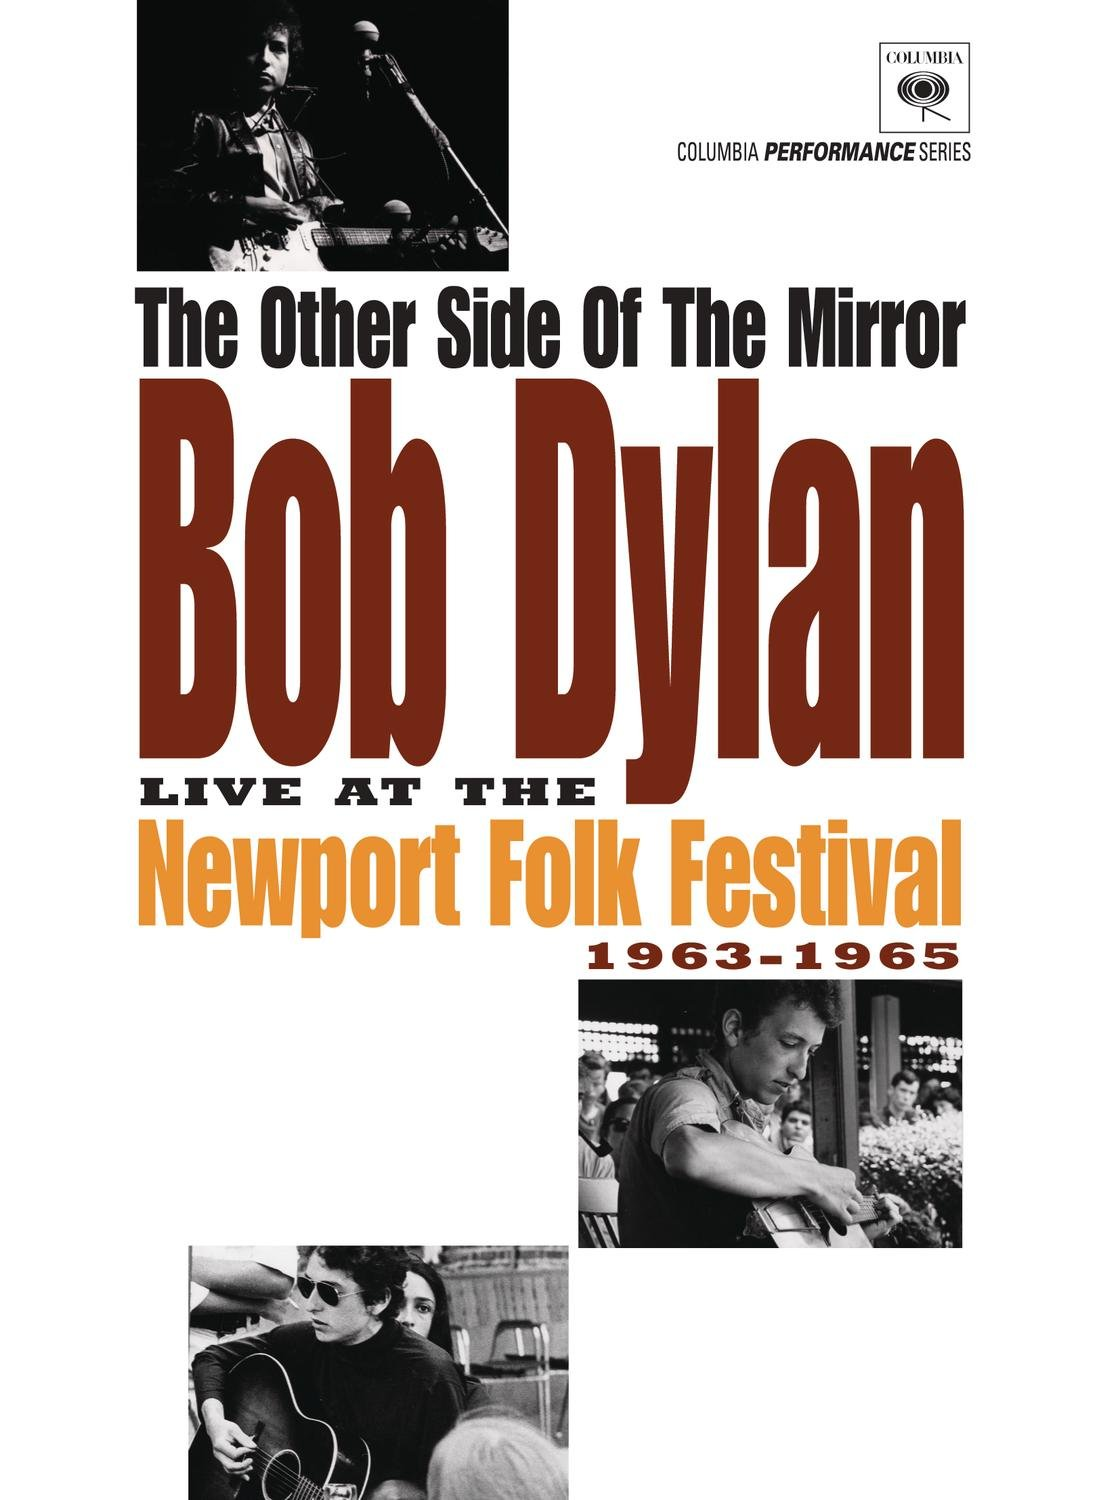 The Other Side of the Mirror: Bob Dylan Live at Newport Folk Festival 1963-1965